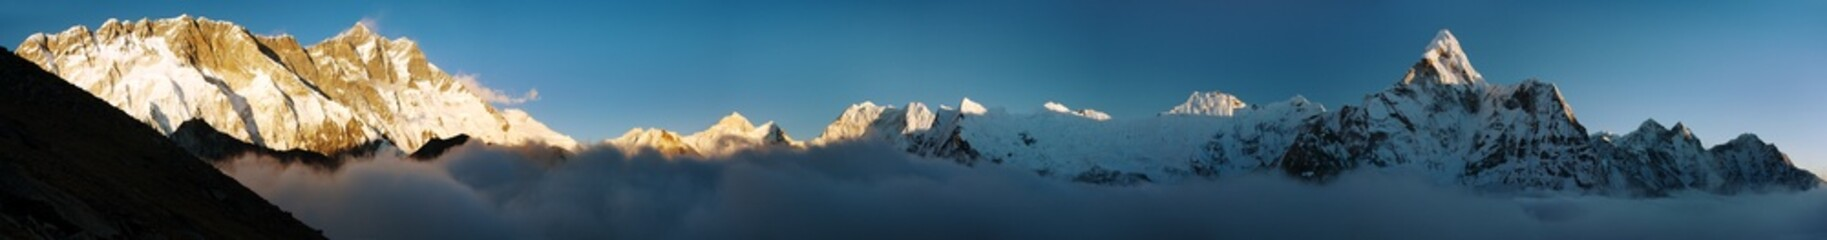 Evening view of Ama Dablam, Lhotse, Nuptse and Makalu